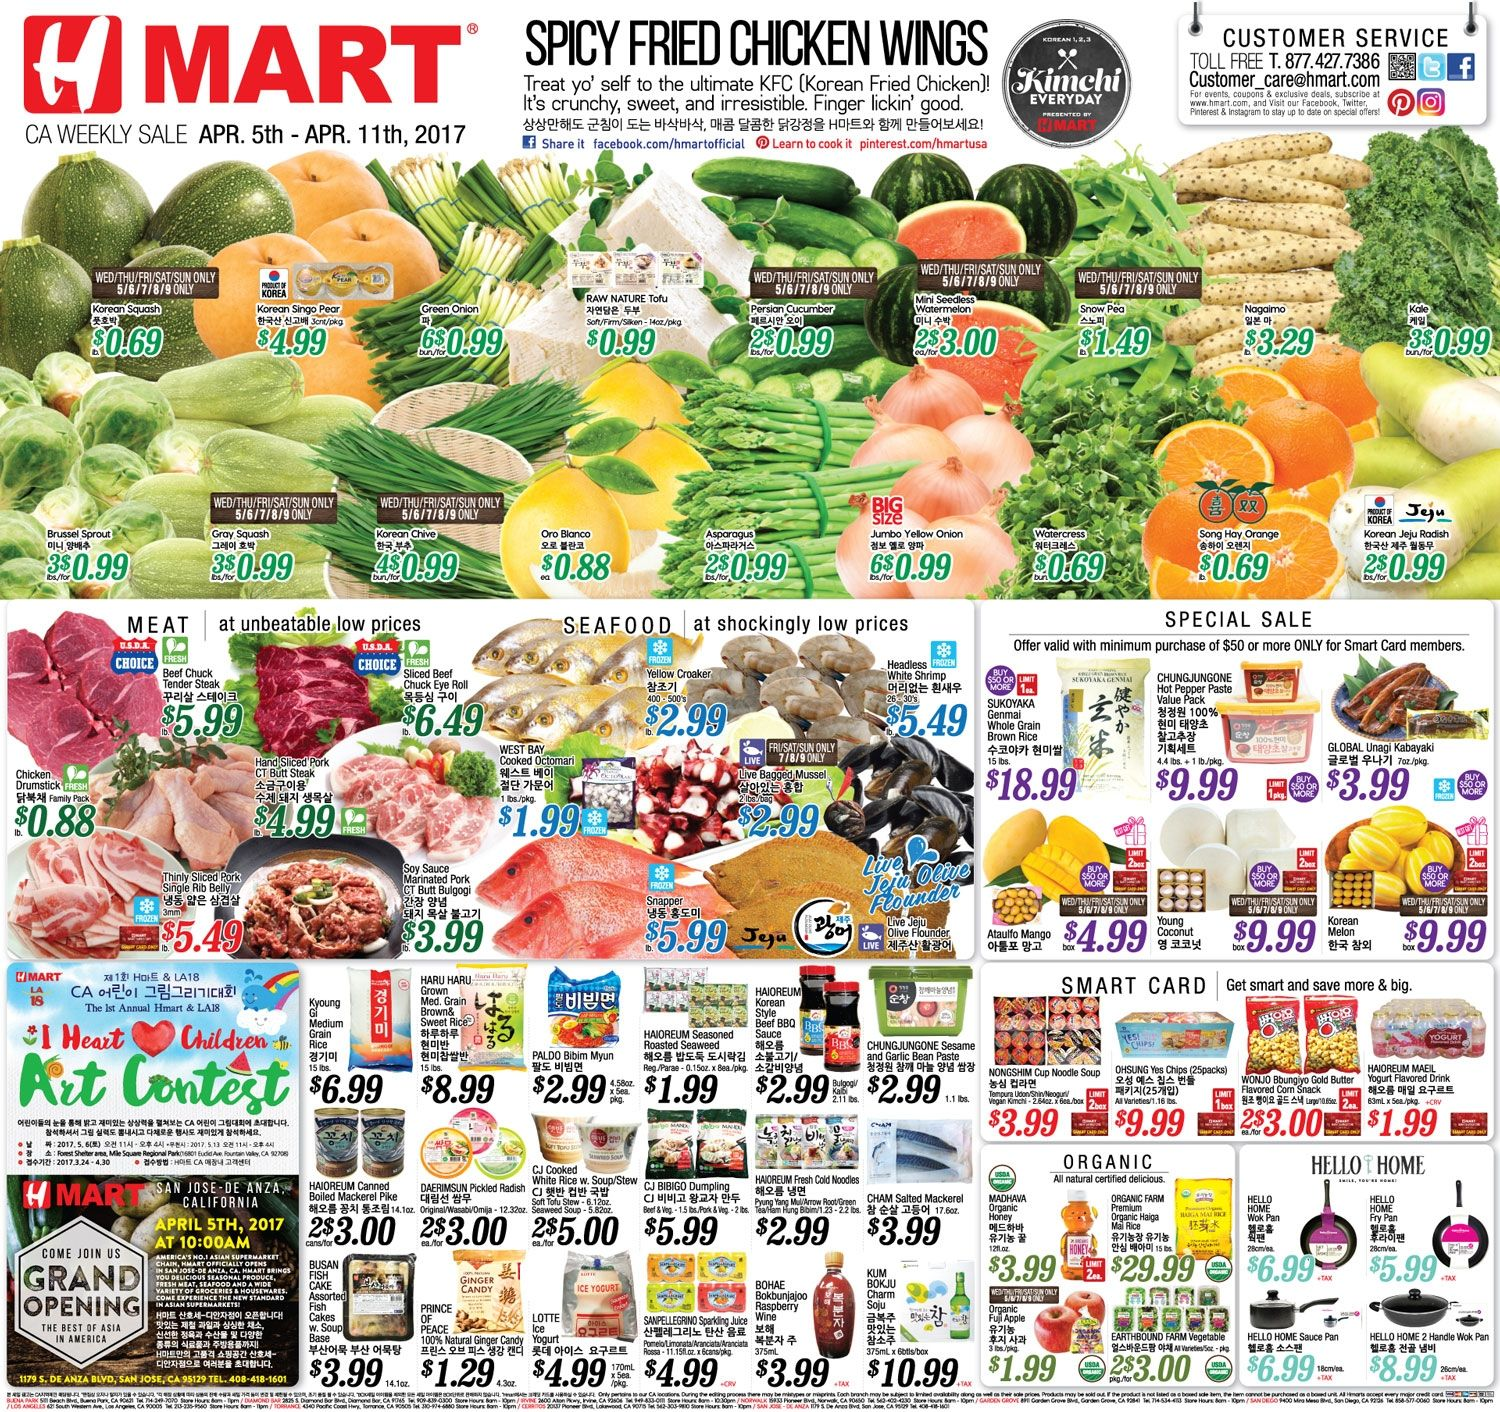 H Mart Weekly Ad April 5 - 11, 2017 - http://www.olcatalog.com/h-mart/h-mart-weekly-ad.html